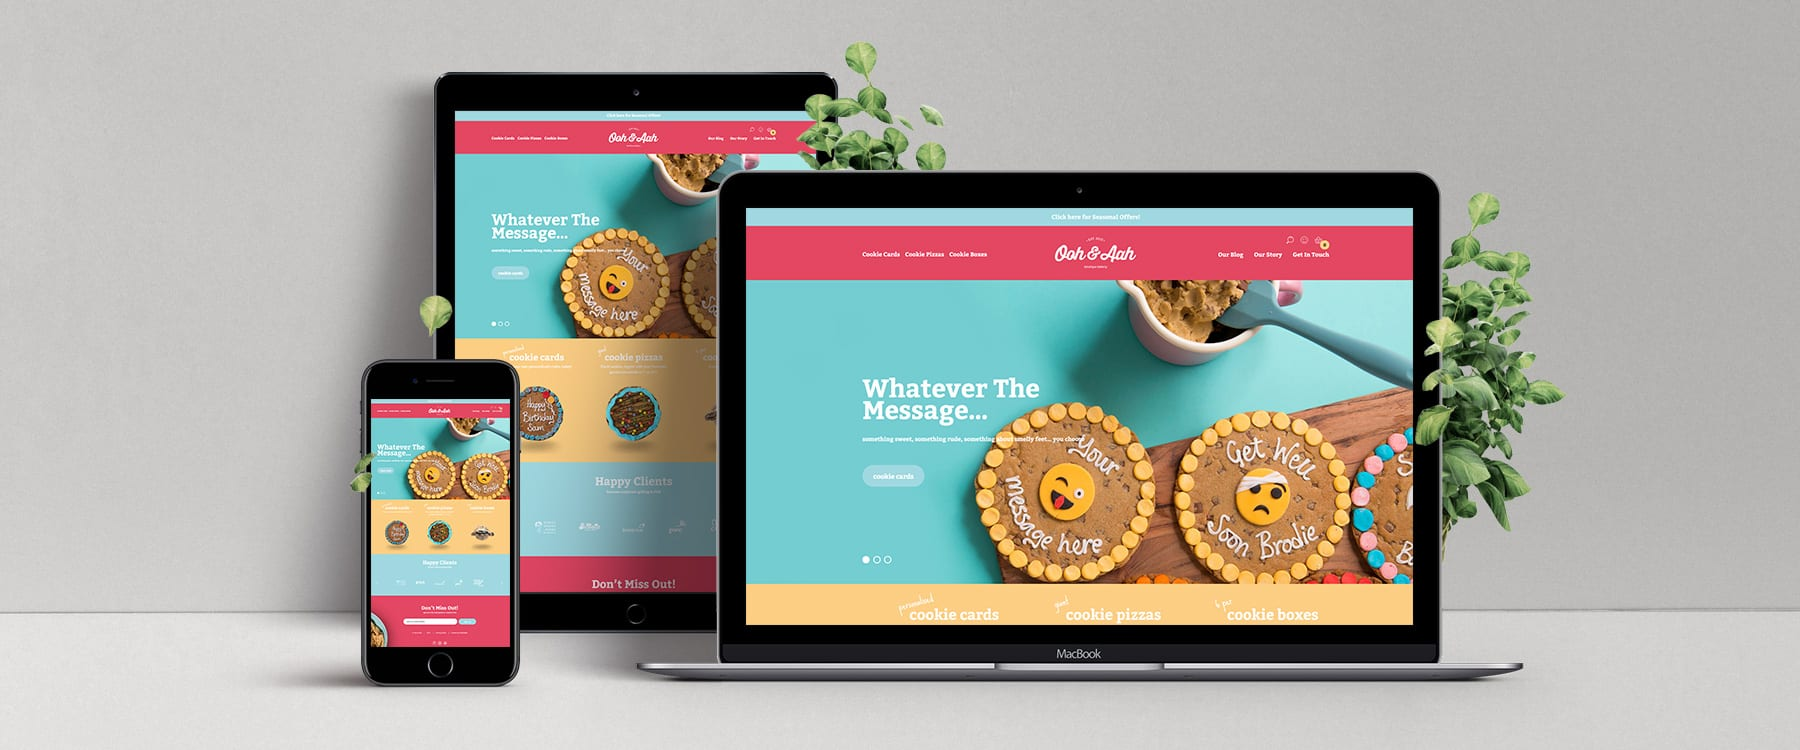 Ooh and Aah Get a Delicious New Website! Image